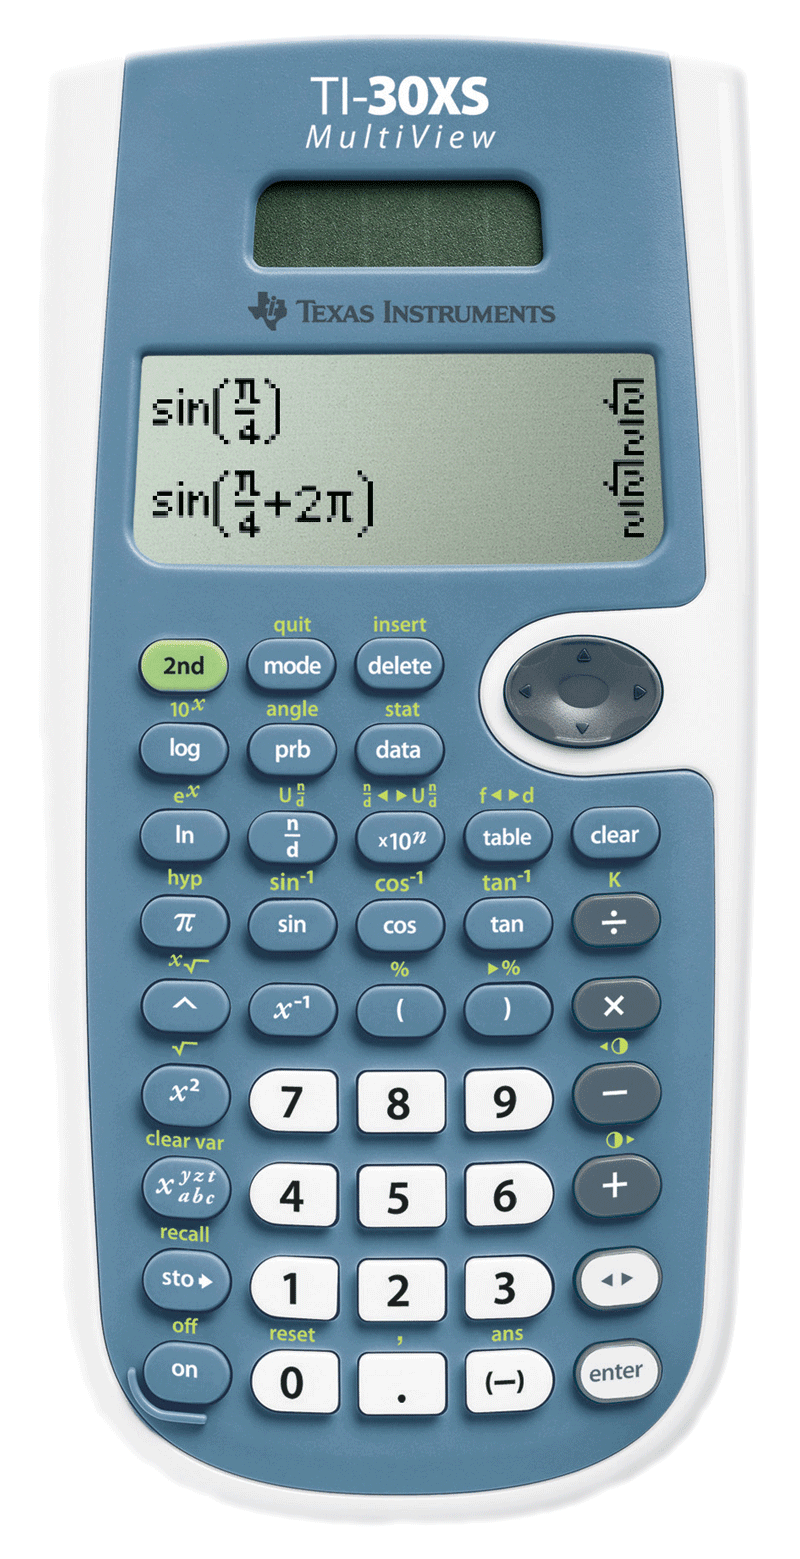 calculadora-cientifica-texas-instruments-ti-30xs-multiview